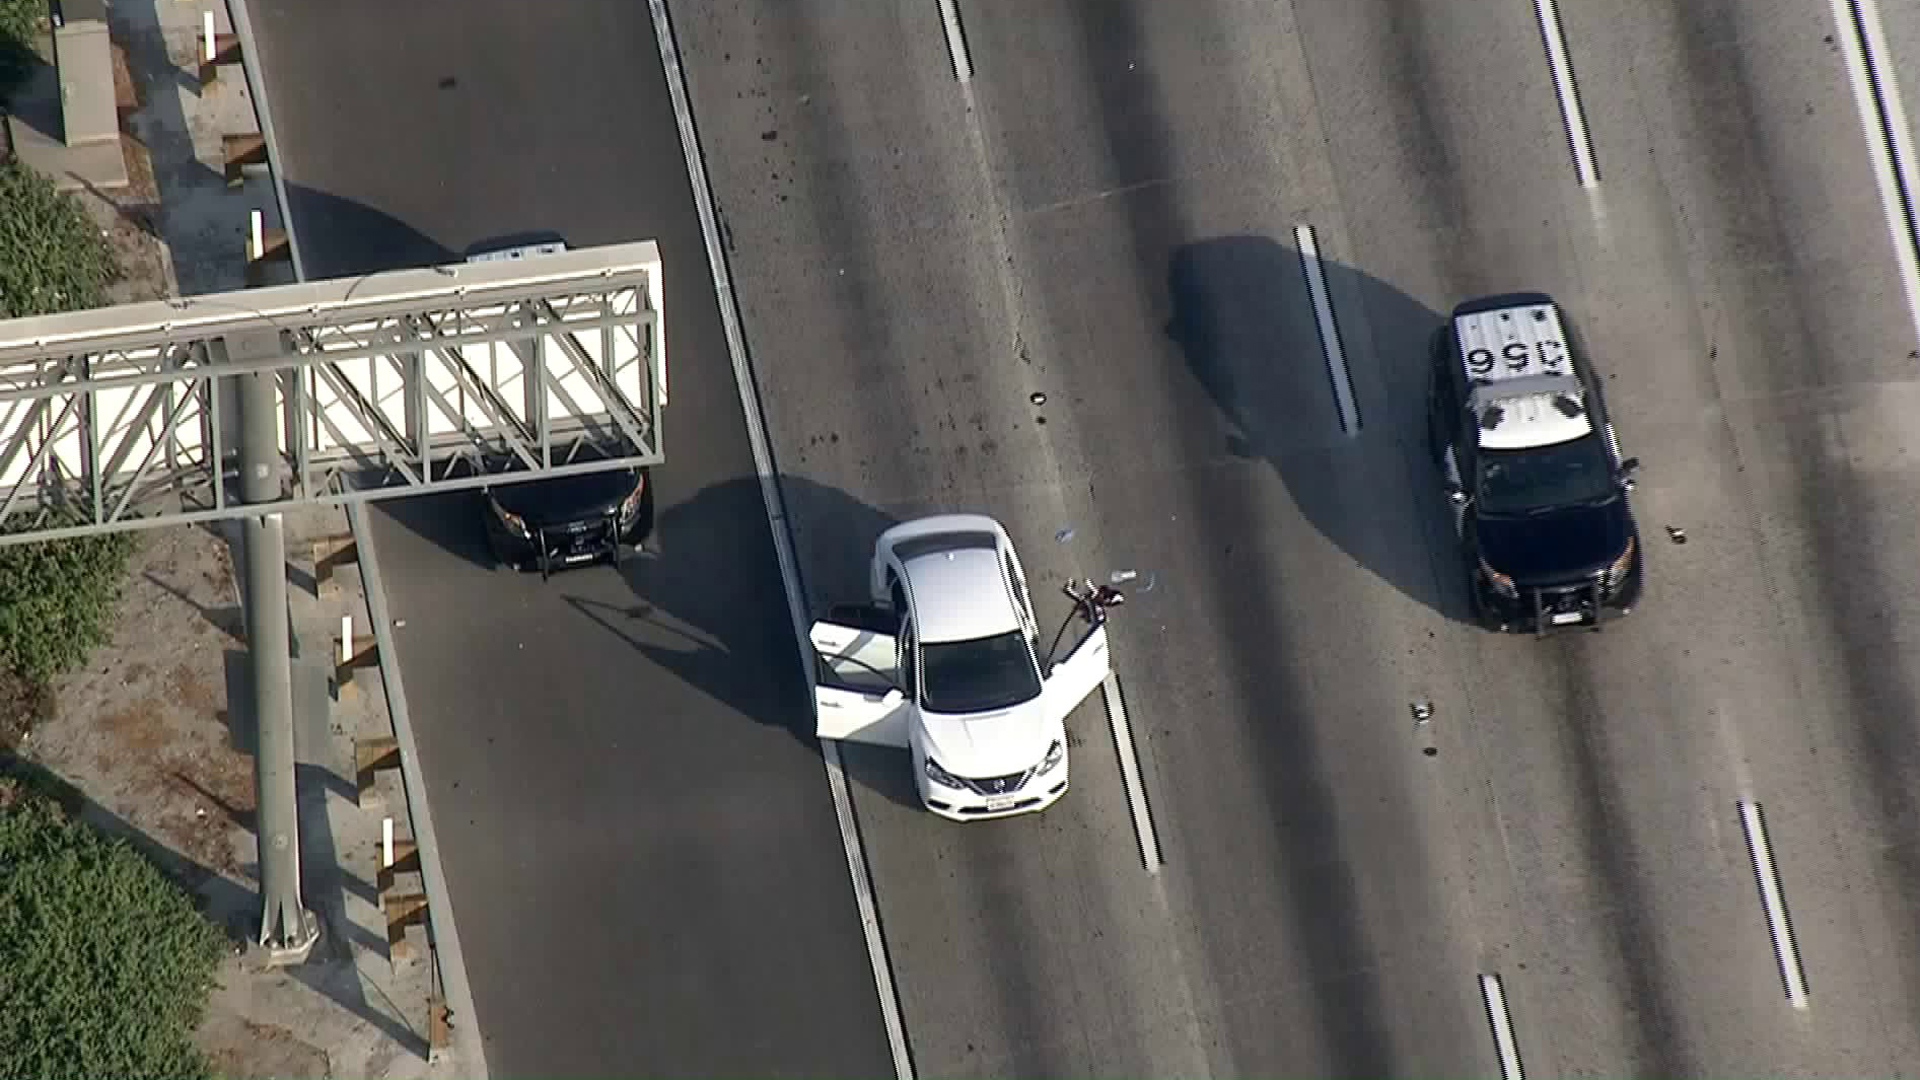 Authorities investigate following a car-to-car shooting on the 91 Freeway on Aug. 17, 2018. (Credit: KTLA)